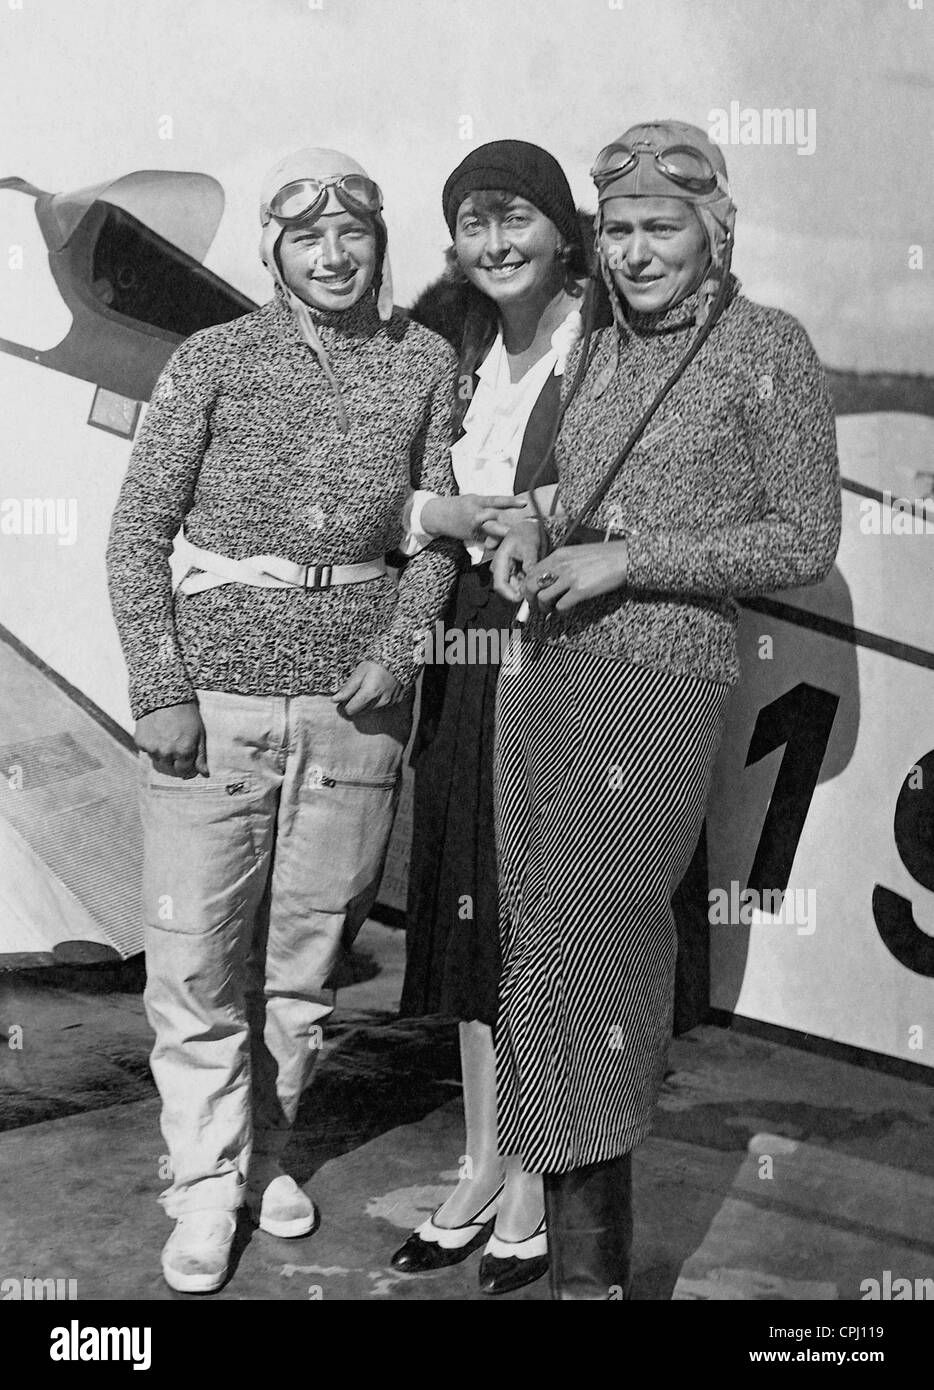 Lisel Bach, Elly Beinhorn and Thea Rasche, 1932 - Stock Image